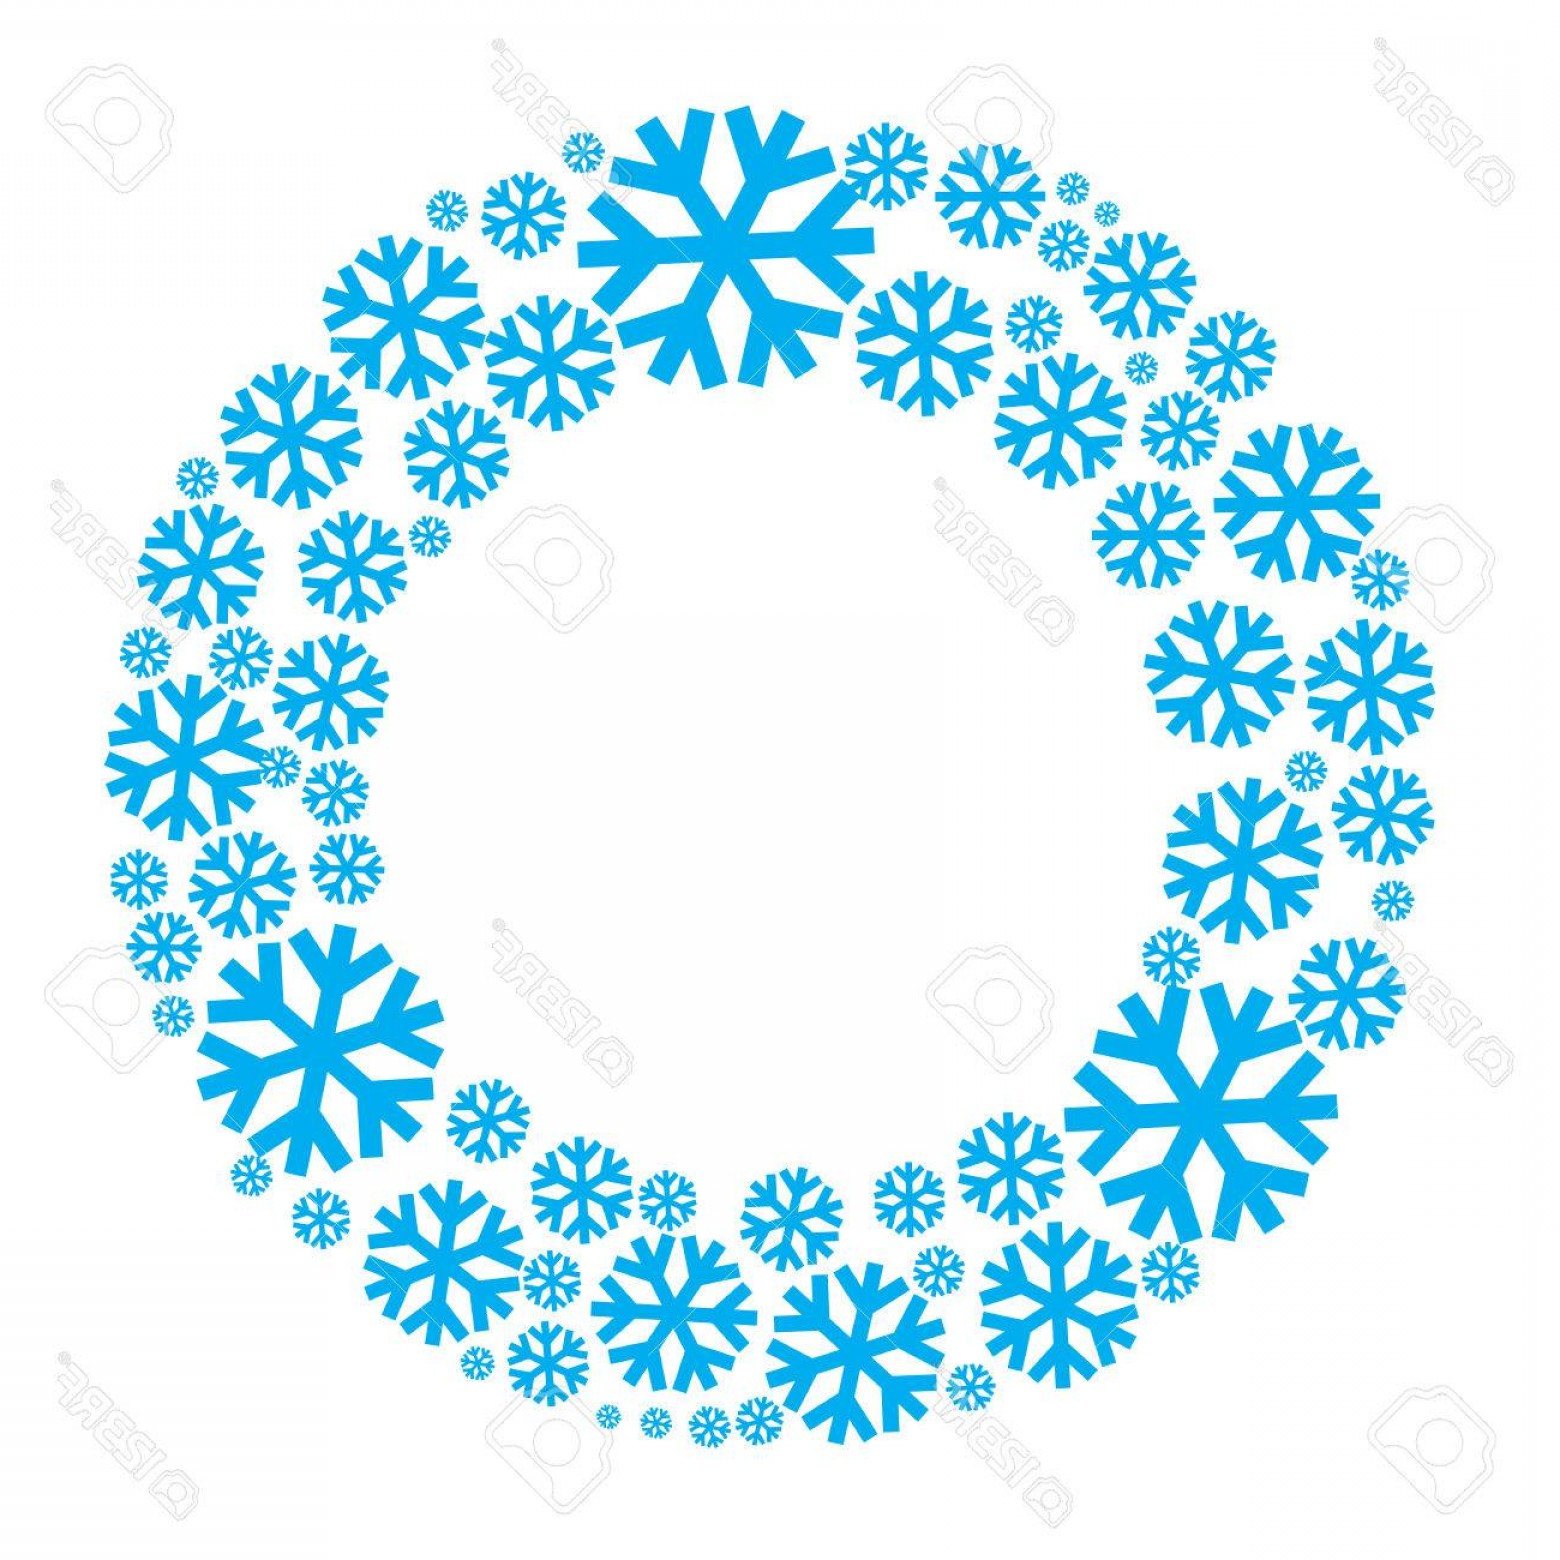 Vector Snowflake Wreath: Photostock Vector Snowflake Vector Wreath Isolated Snow Flake Circle Frame Round Winter Background